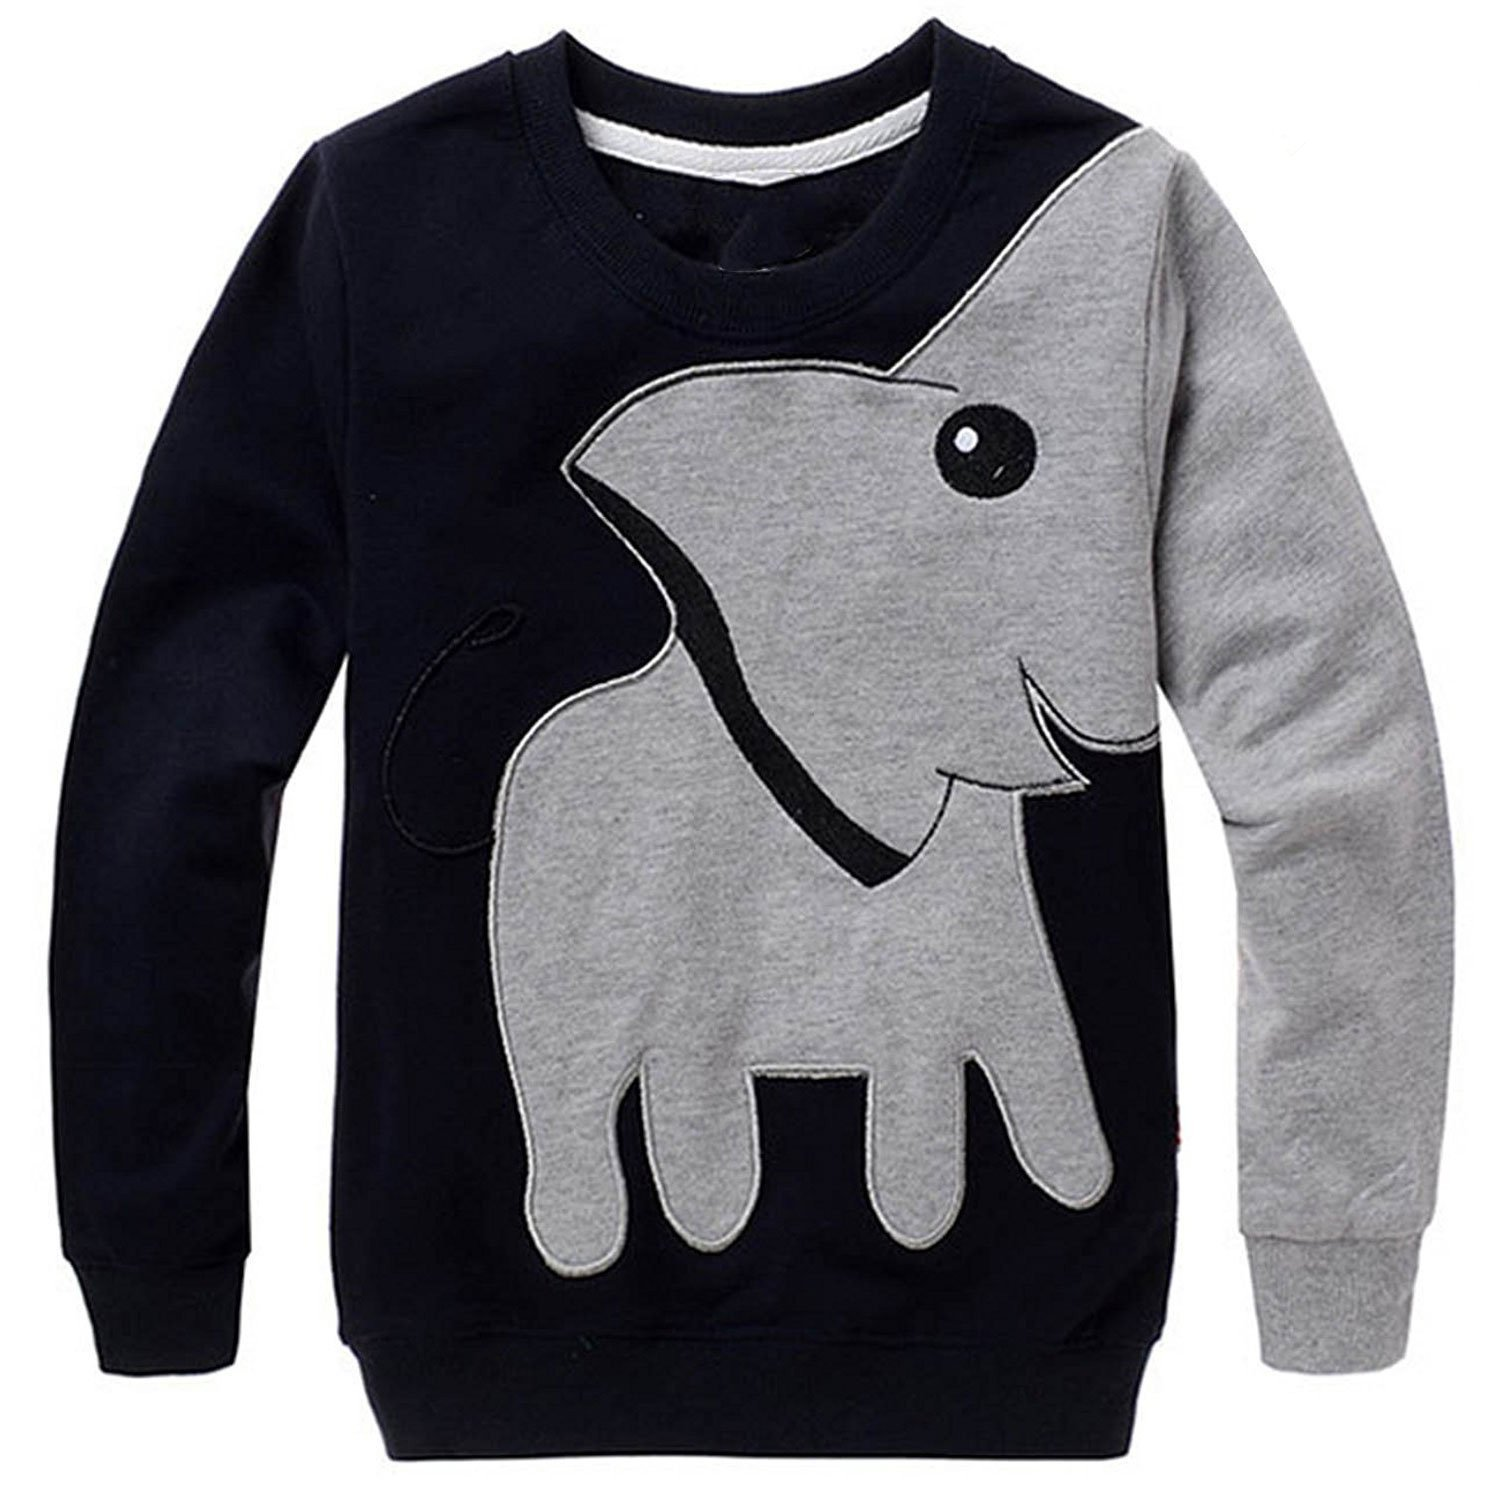 LitBud Boys Sweatshirt for Boys Kids Toddler Jumpers Kids Elephant Sweaters Sweatshirt Pullover Casual Shirt Tops Size 3-4 Years Black 4T